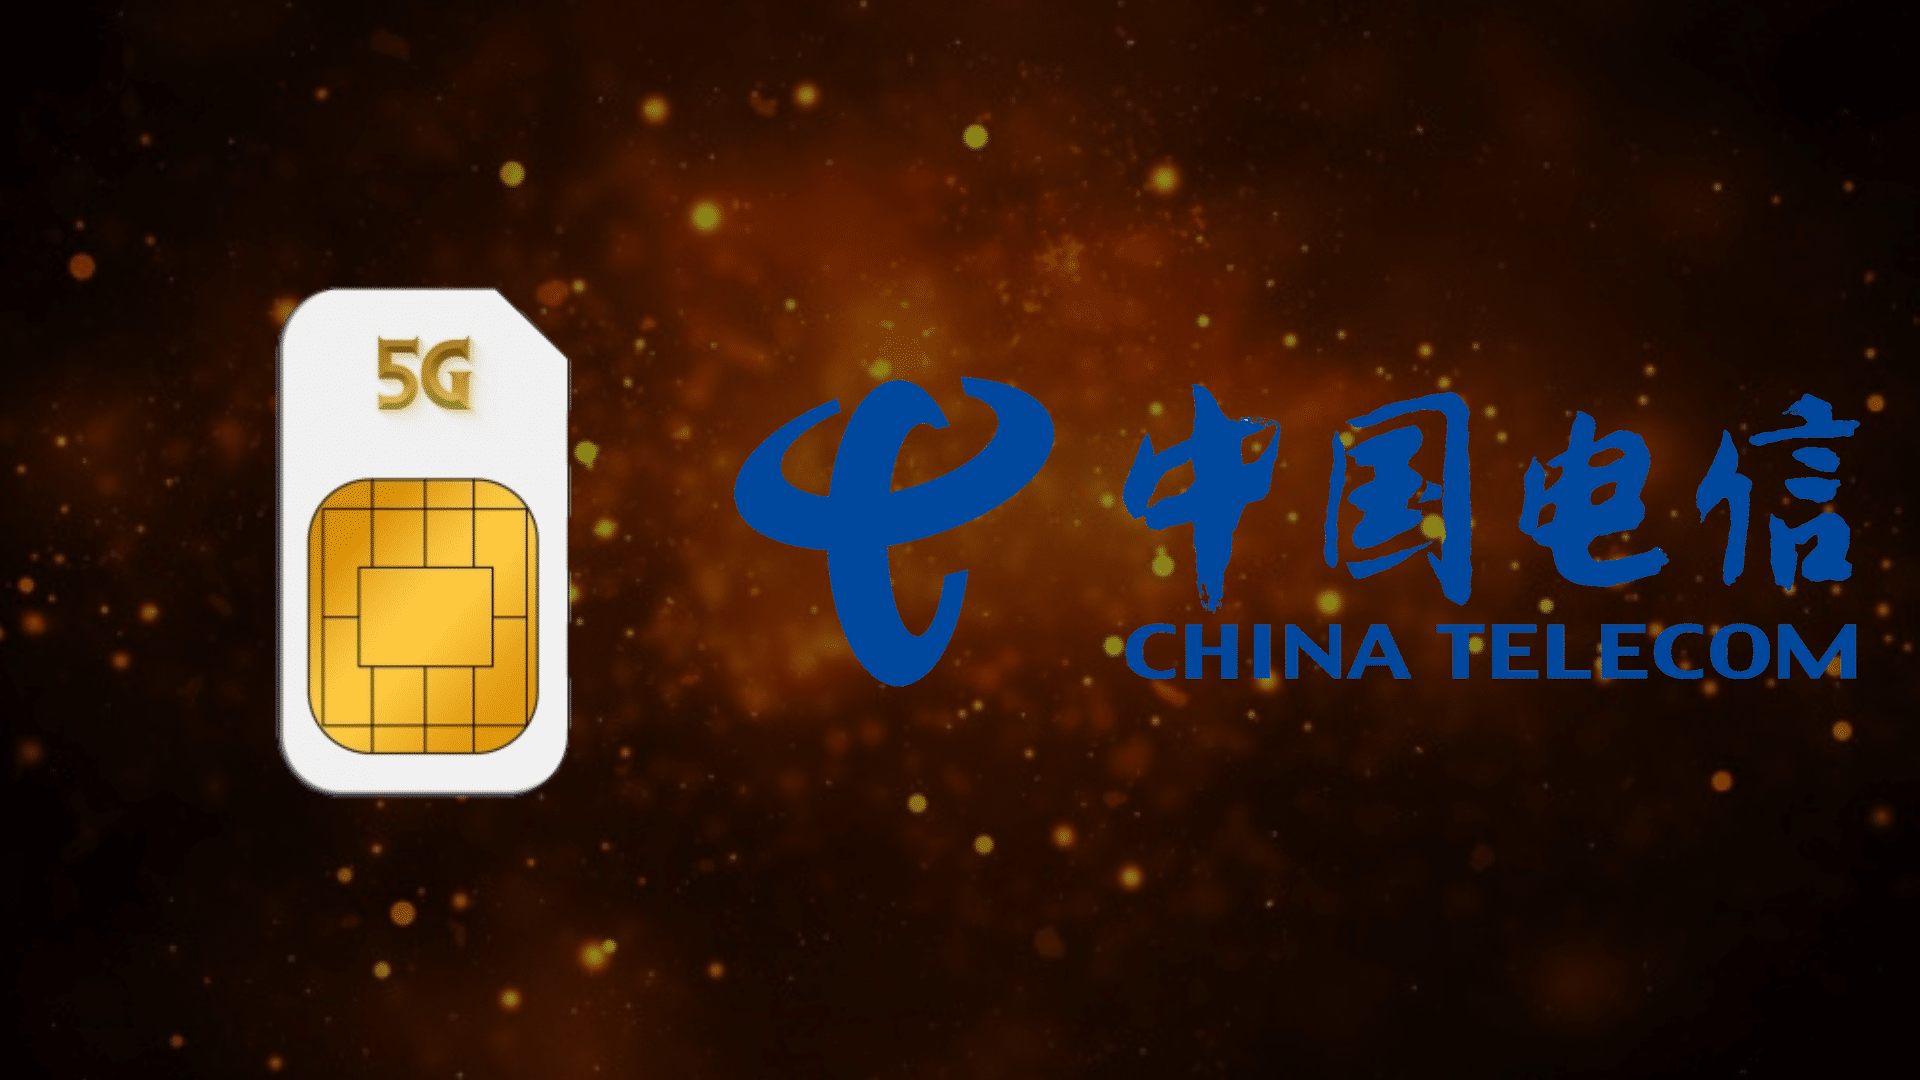 China Telecom Gears up to Develop Blockchain-Enabled 5G SIM